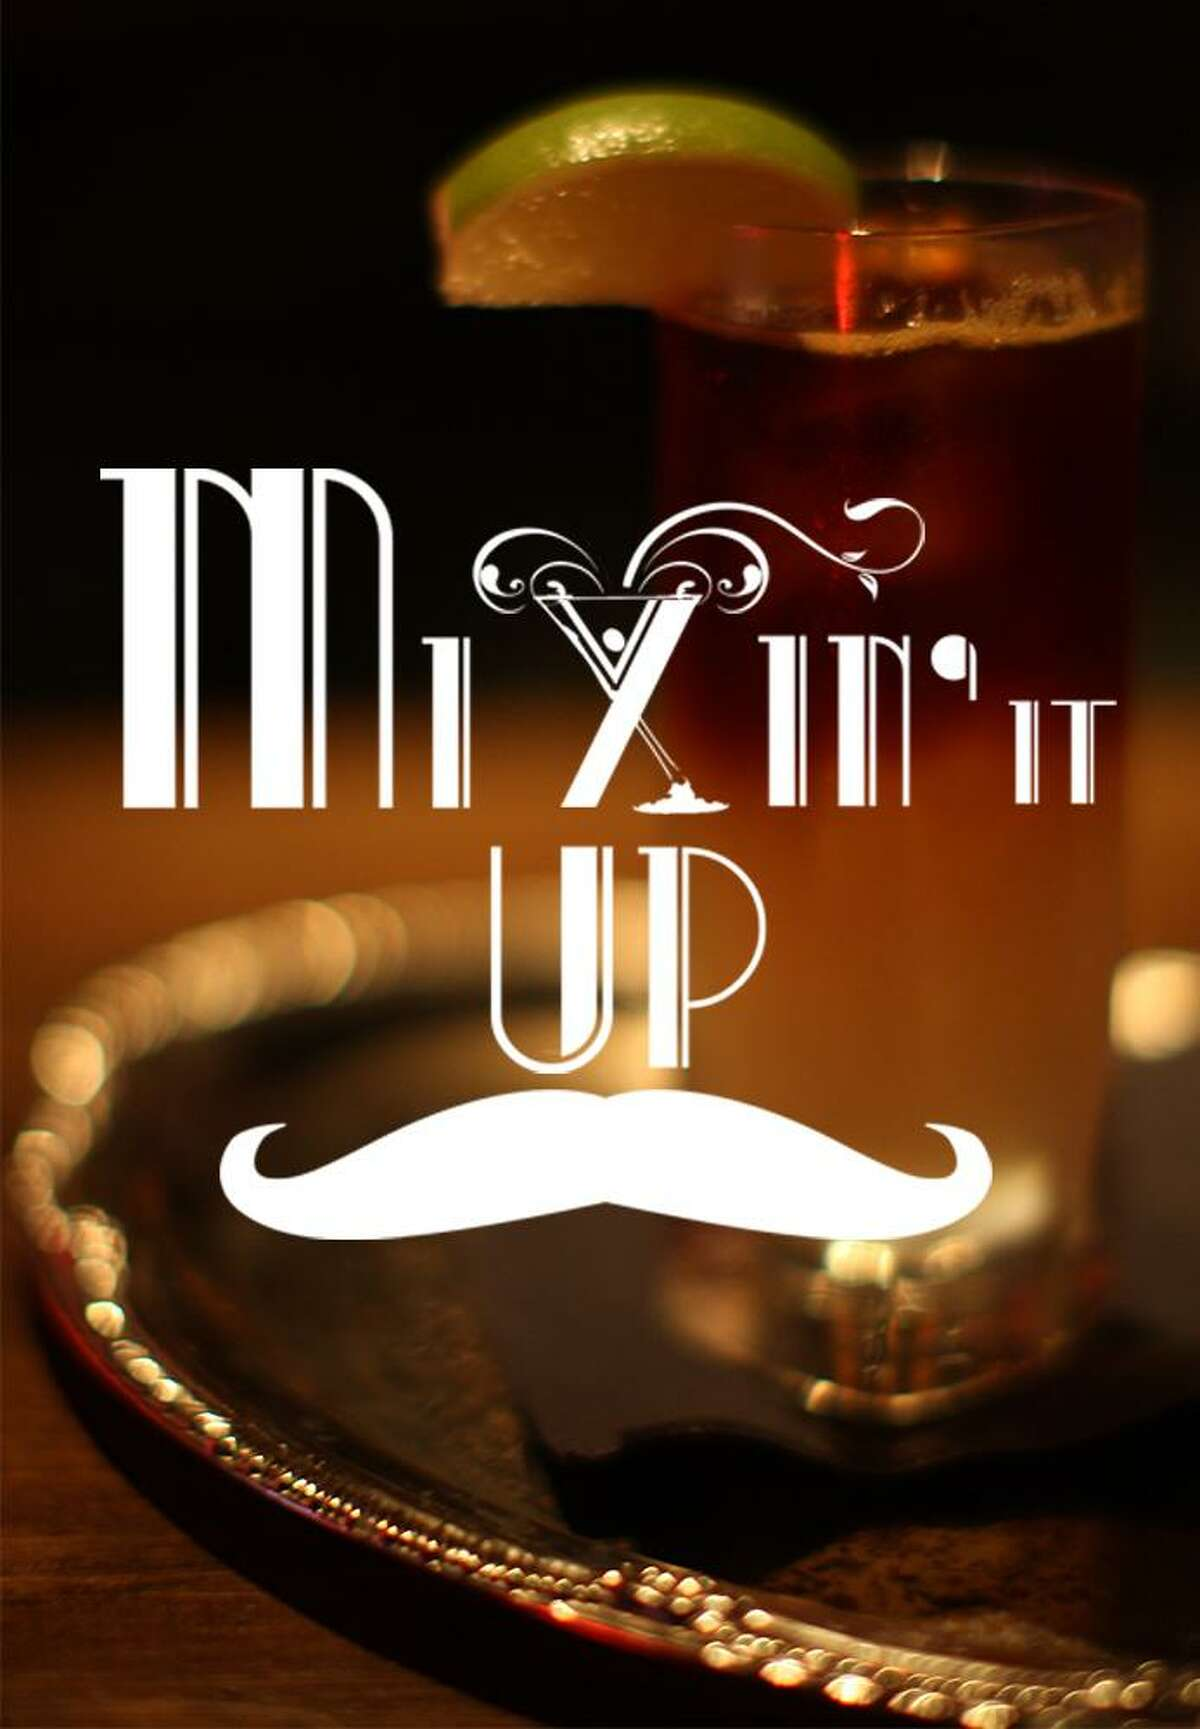 Poster for Mixin' It Up, a new travel and cocktails show featuring bar owner Jeret Peña.